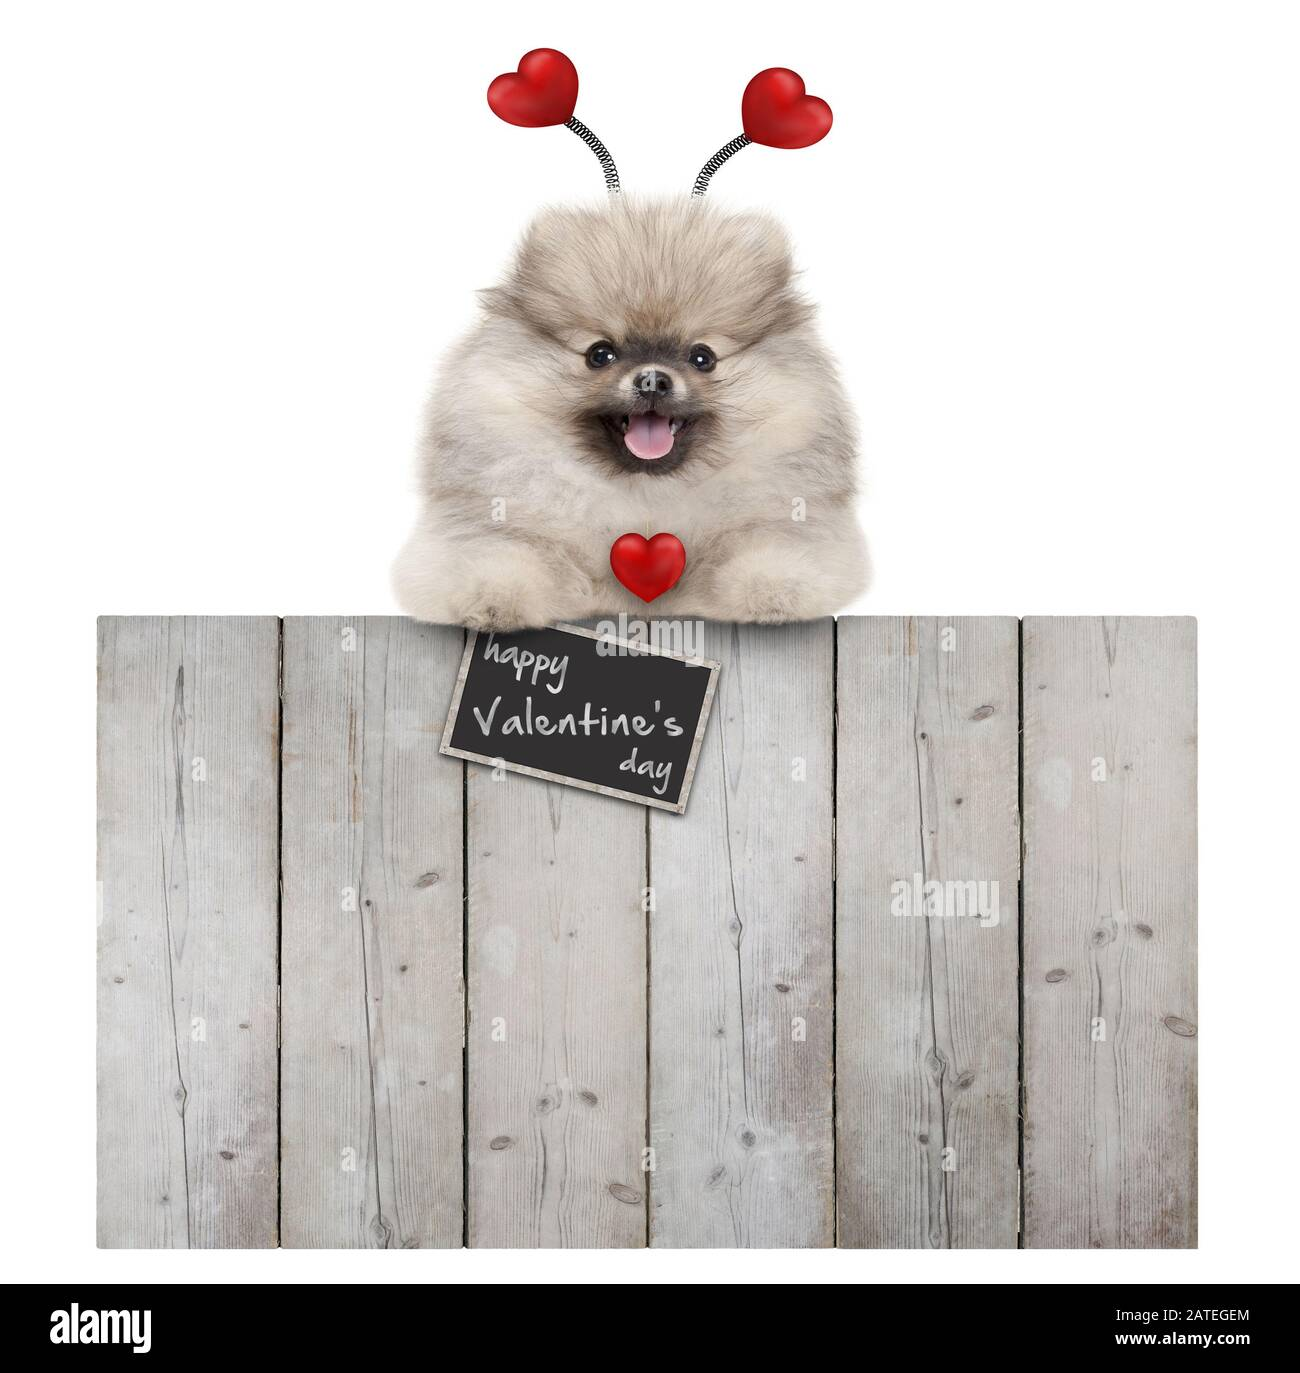 cute smiling pomeranian spitz pug puppy dog with red hearts and sign happy valentine's day, hanging with paws on wooden fence, isolated on white backg Stock Photo